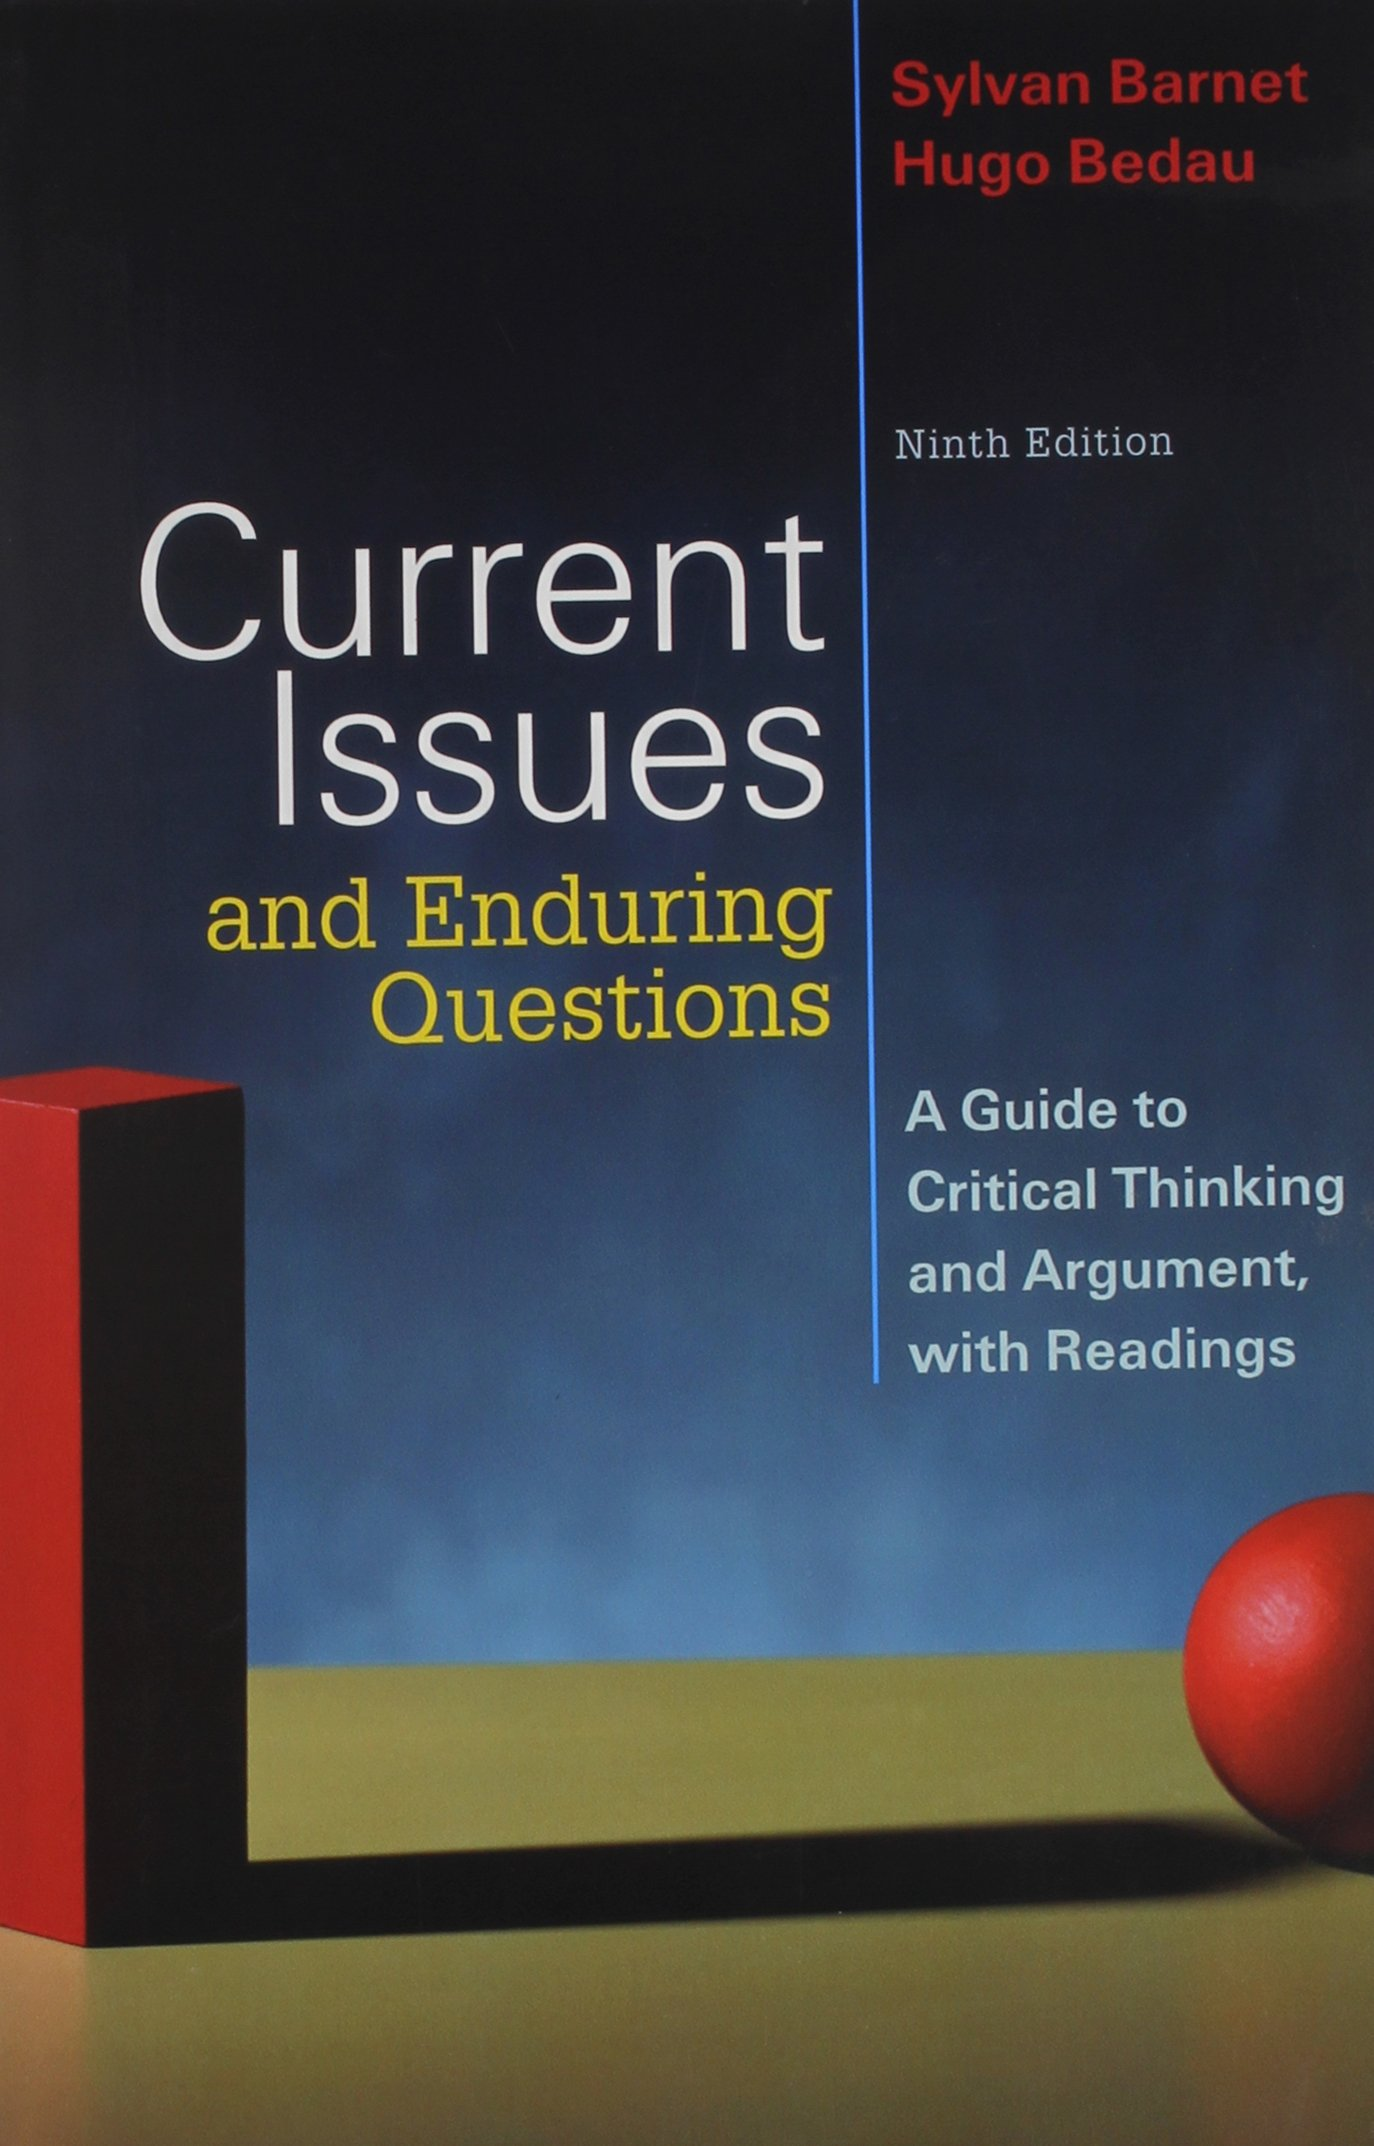 Current Issues and Enduring Questions: A Guide to Critical Thinking and  Argument, With Readings: Amazon.in: Sylvan Barnet, Hugo Bedau: Books